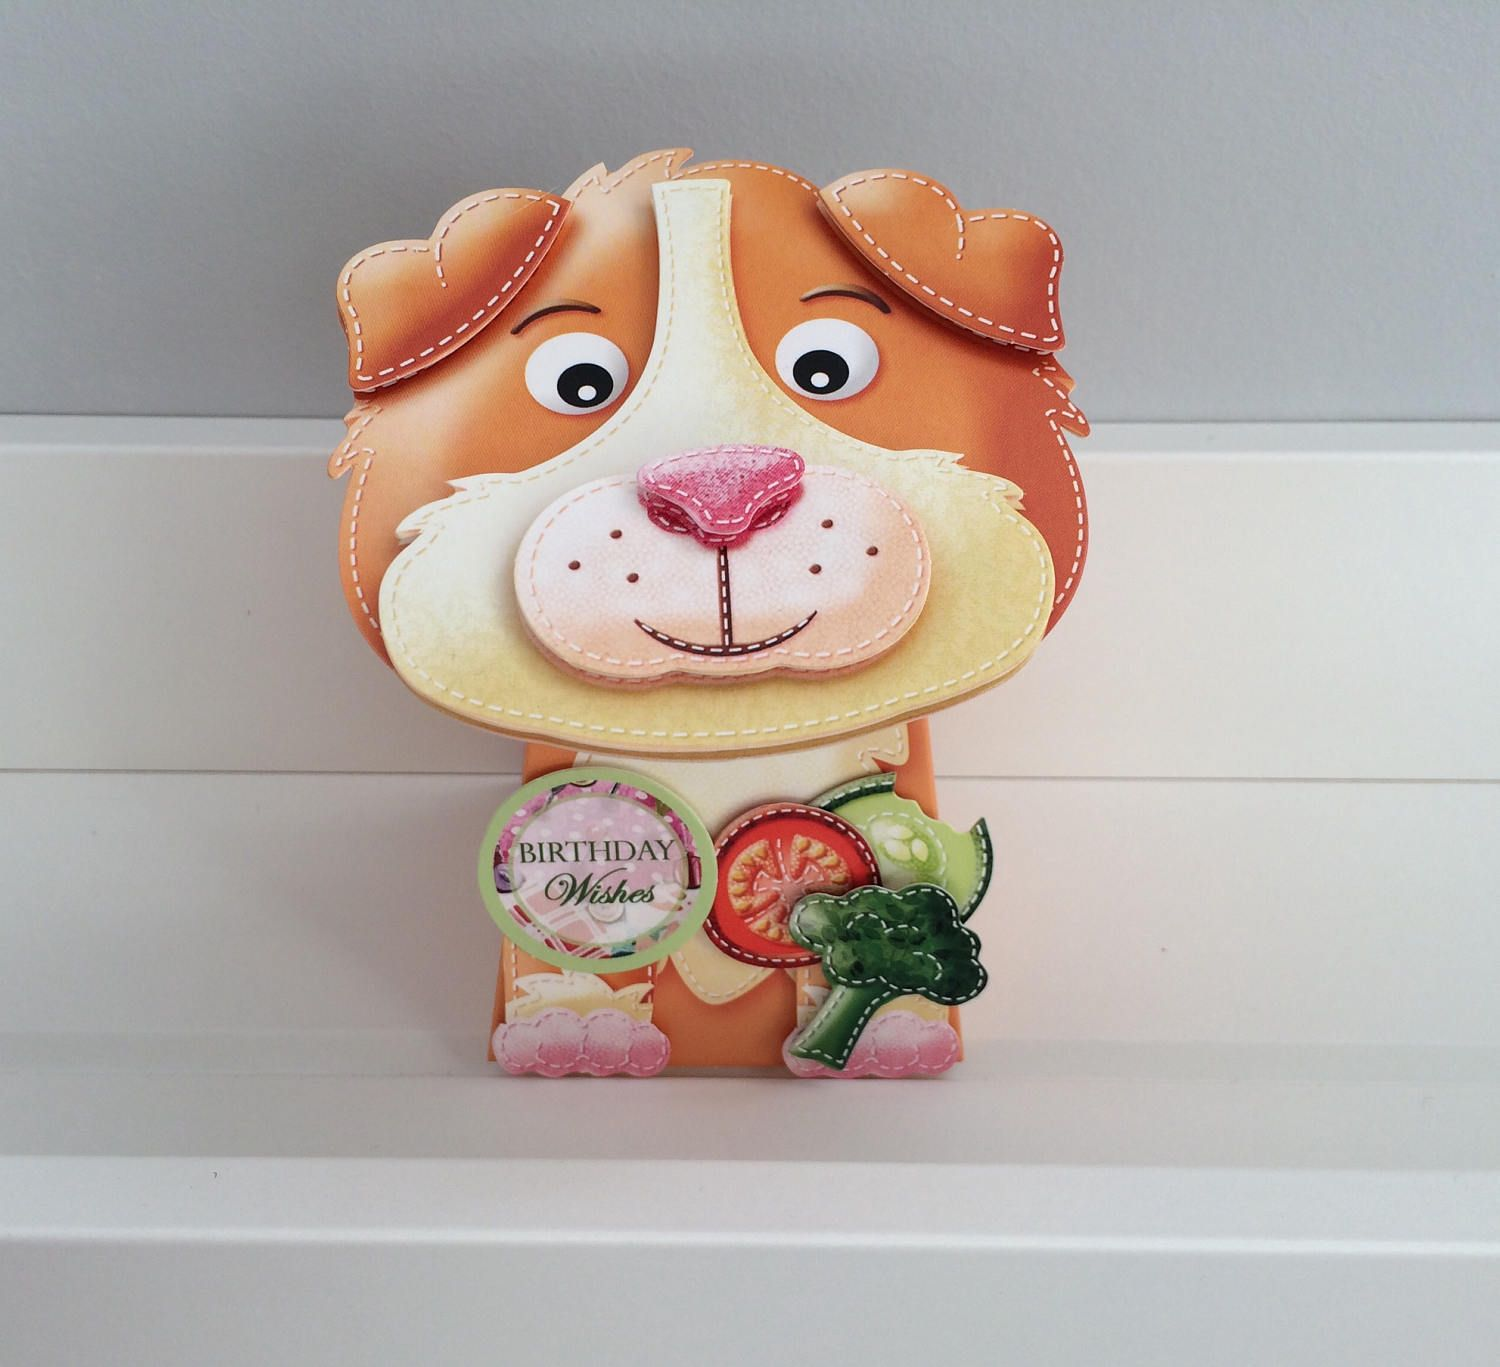 Guinea pig dimensional card with wobbly head by jdesigns on